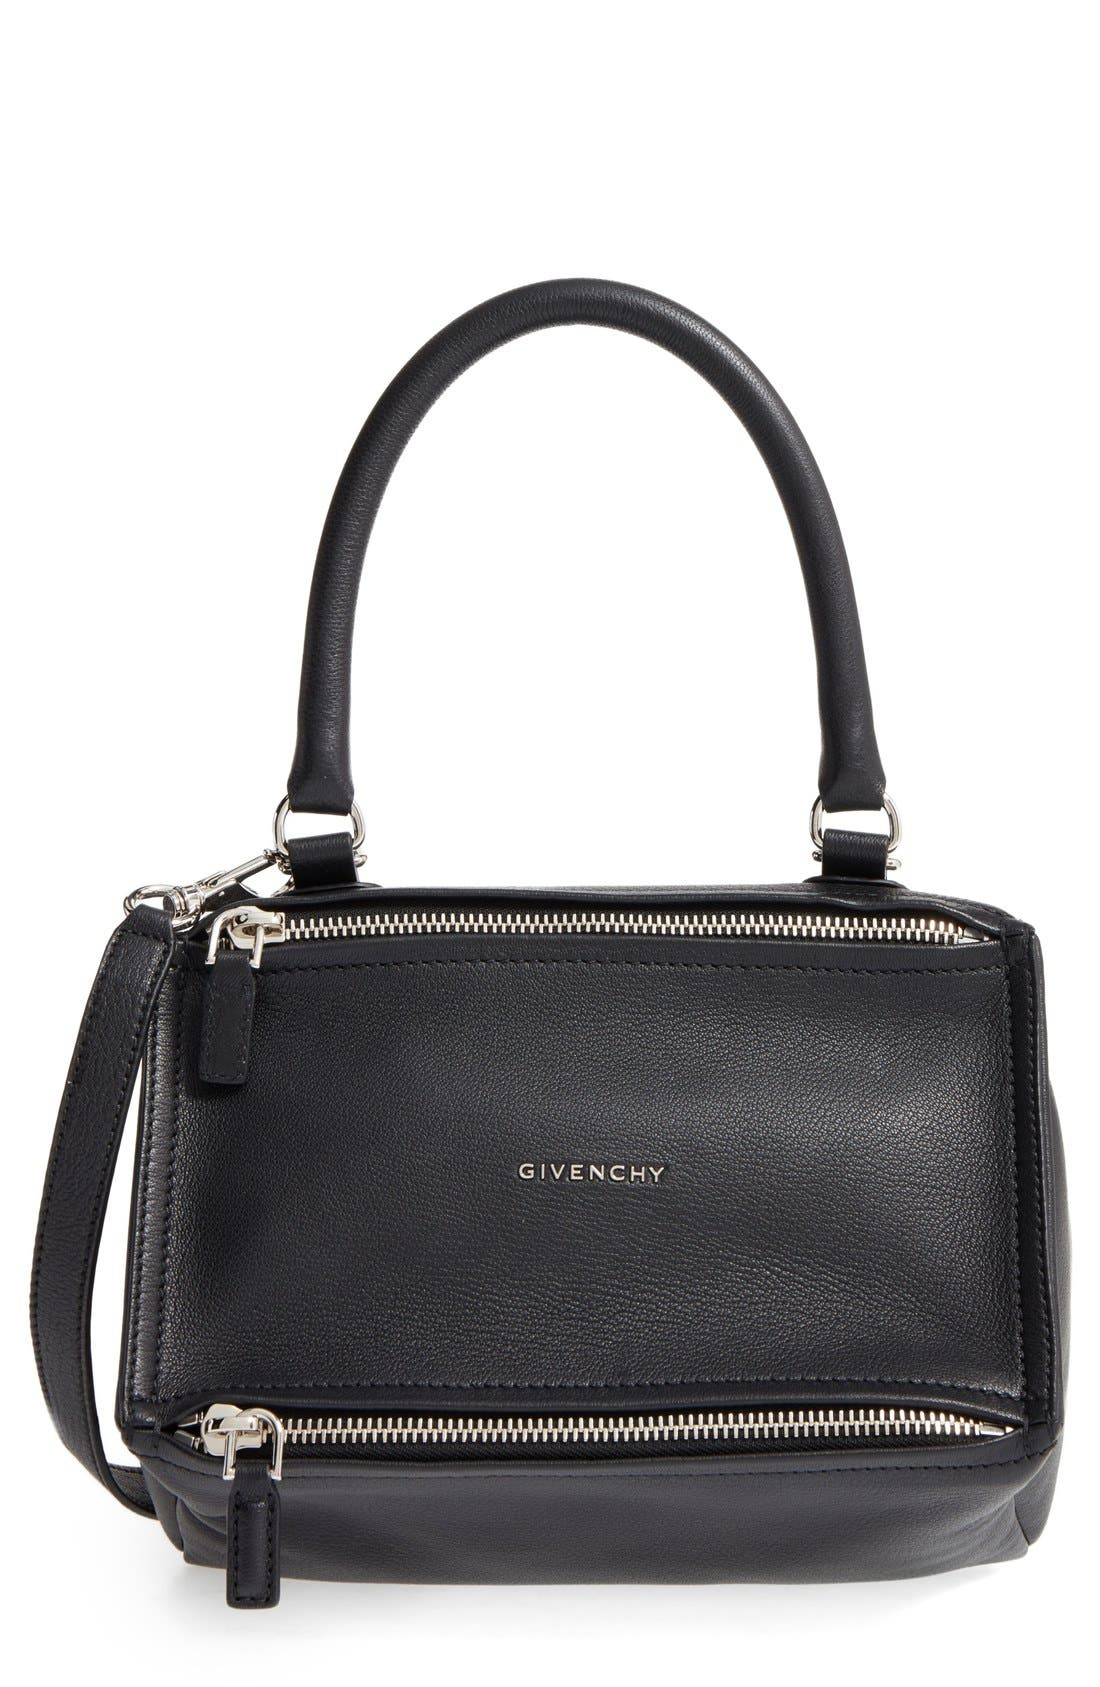 Main Image - Givenchy 'Small Pandora' Leather Satchel